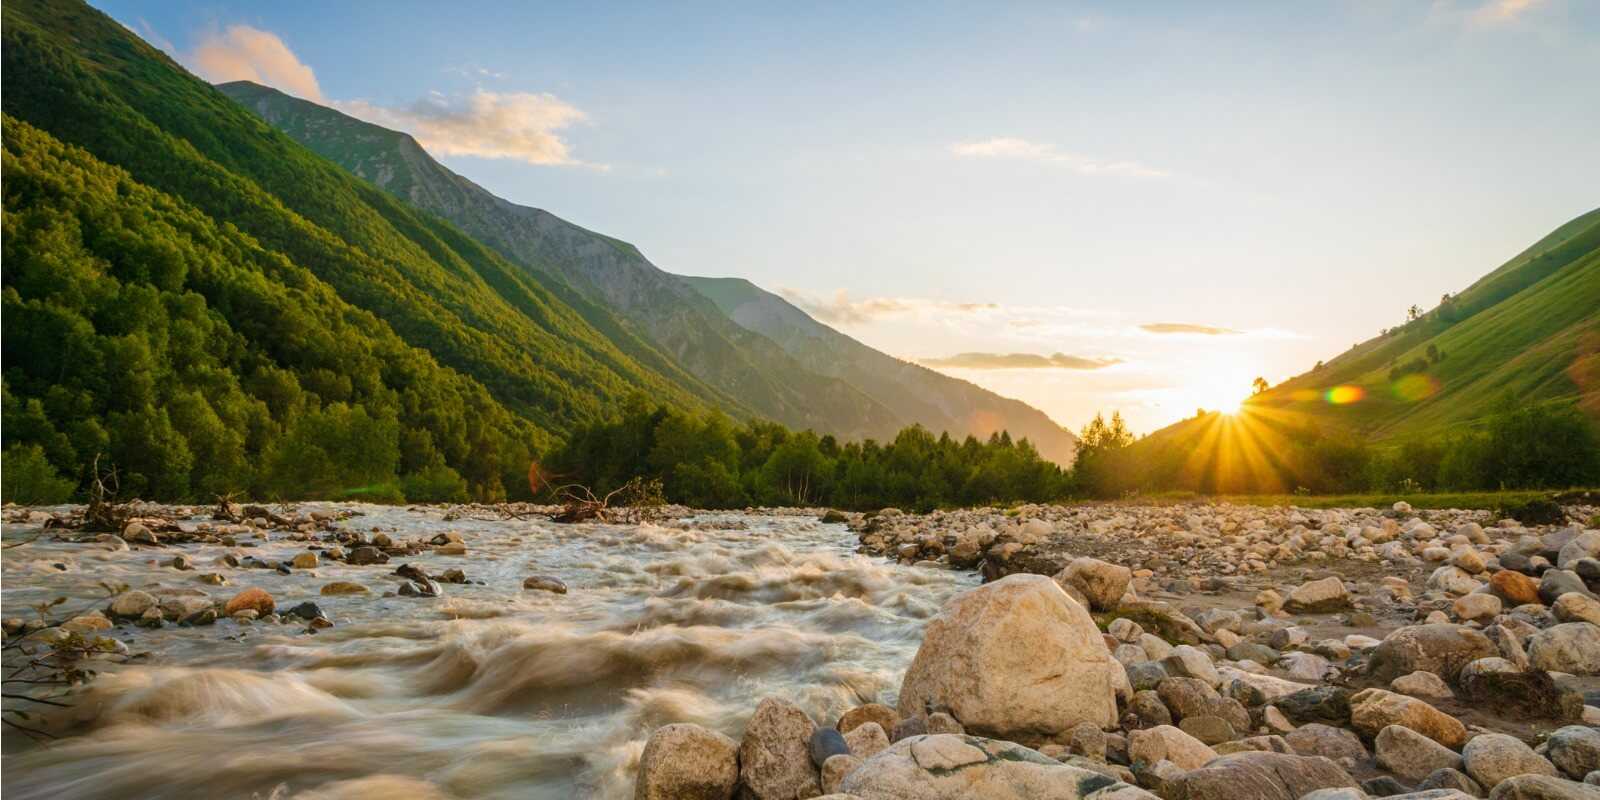 Svaneti Sunset over River Rocks